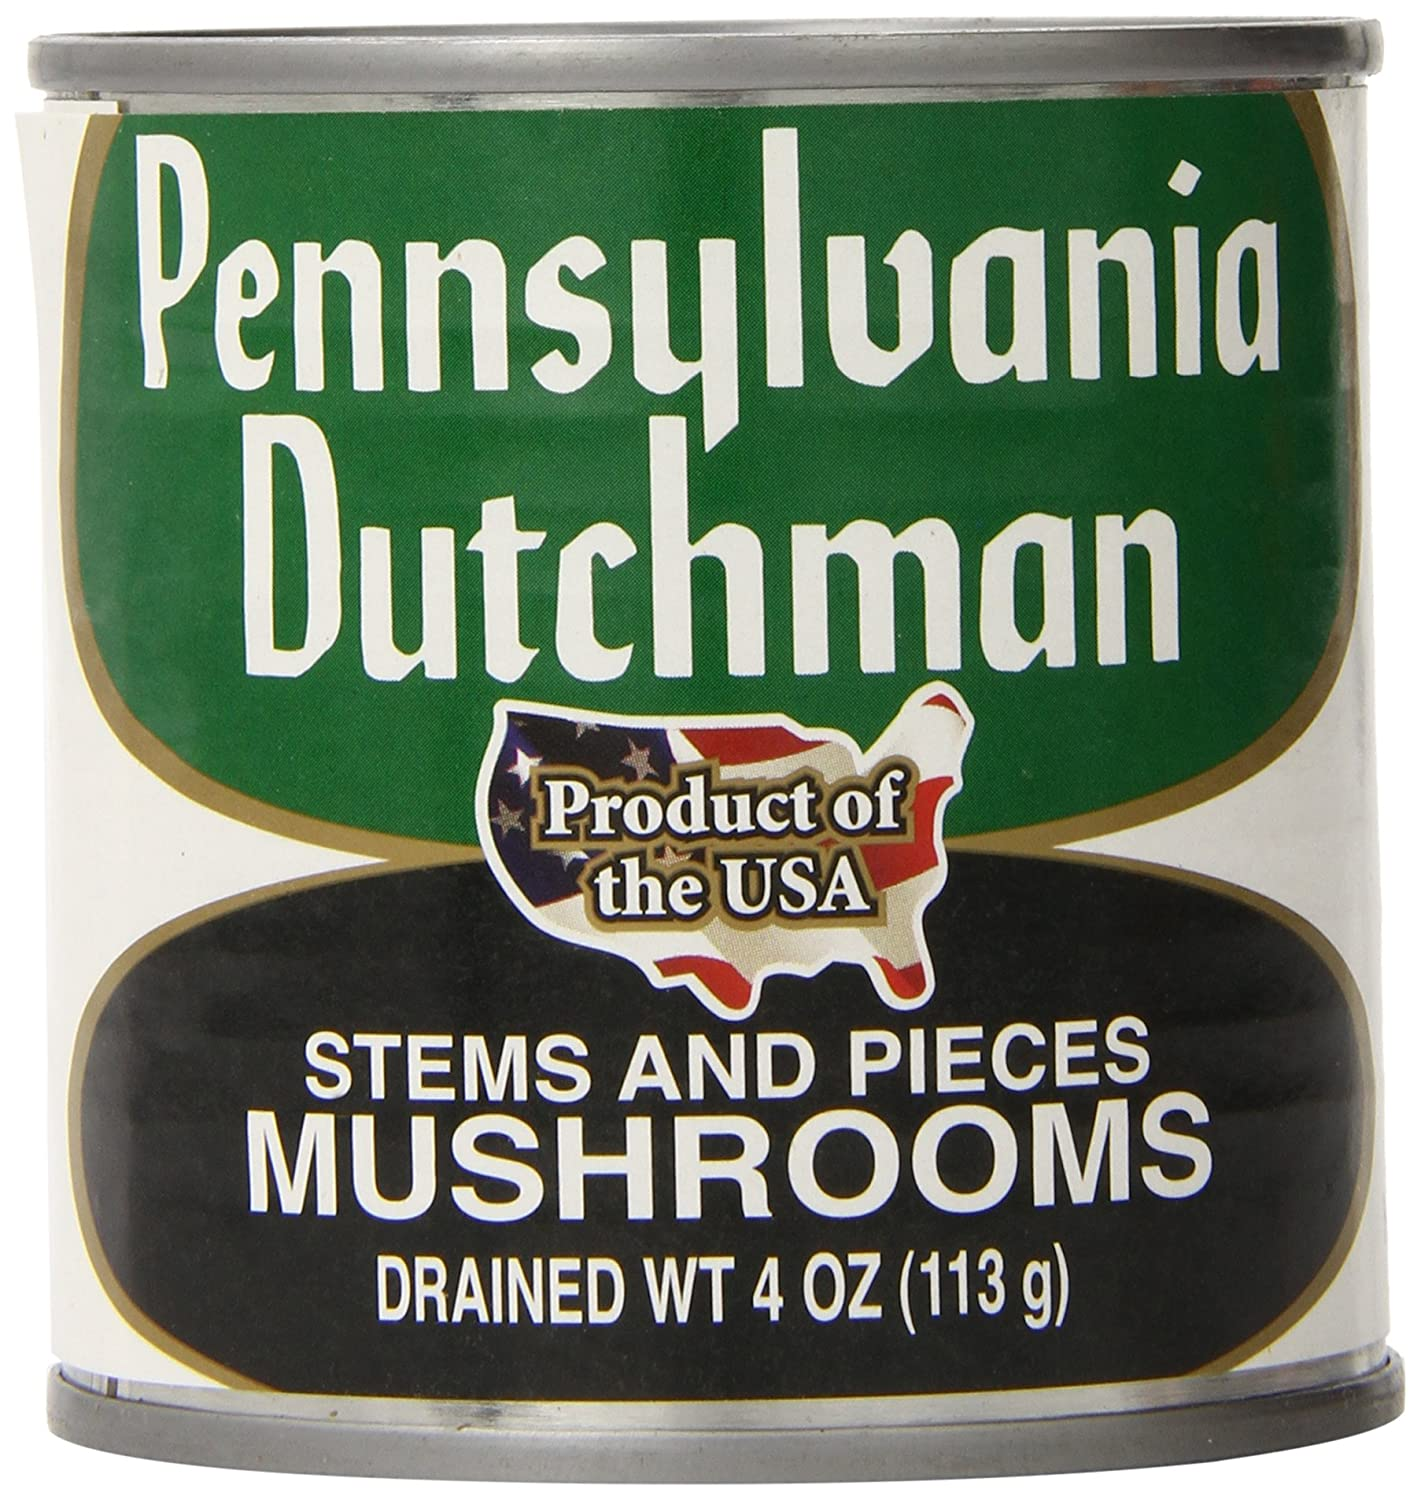 Pennsylvania Dutchman Canned Mushrooms